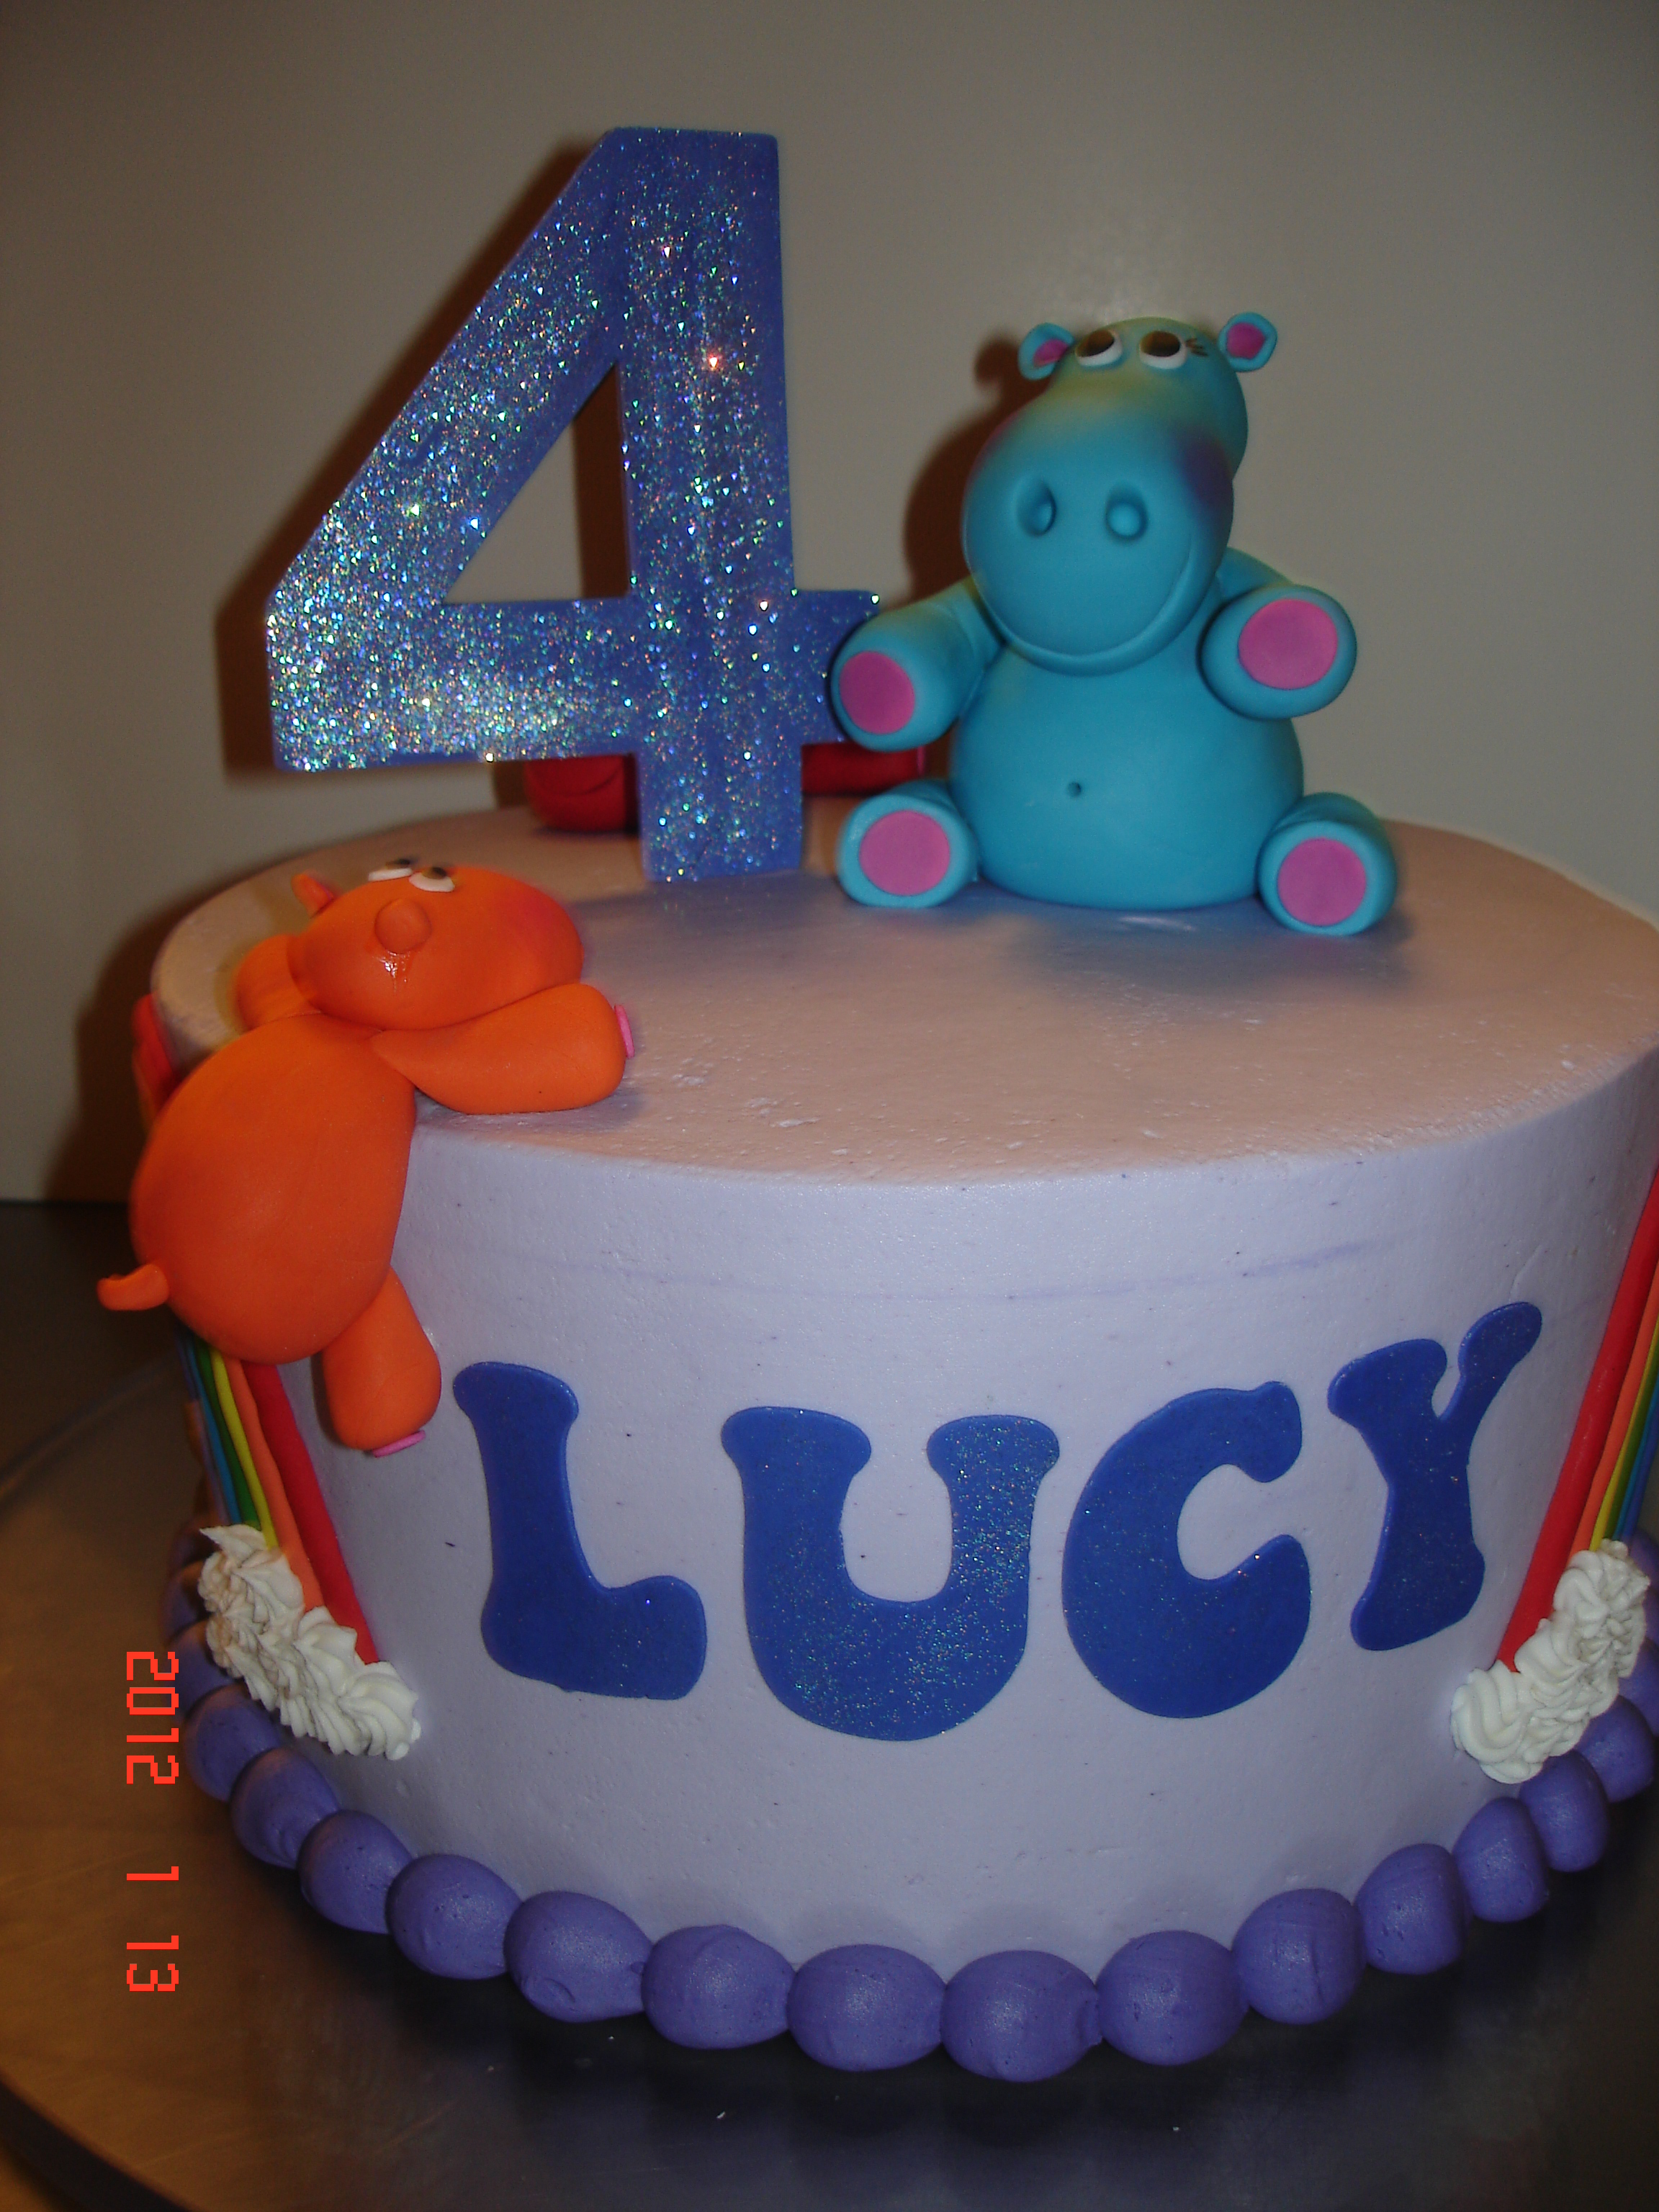 Cake Art Words : Kids St. Louis Custom Cakes